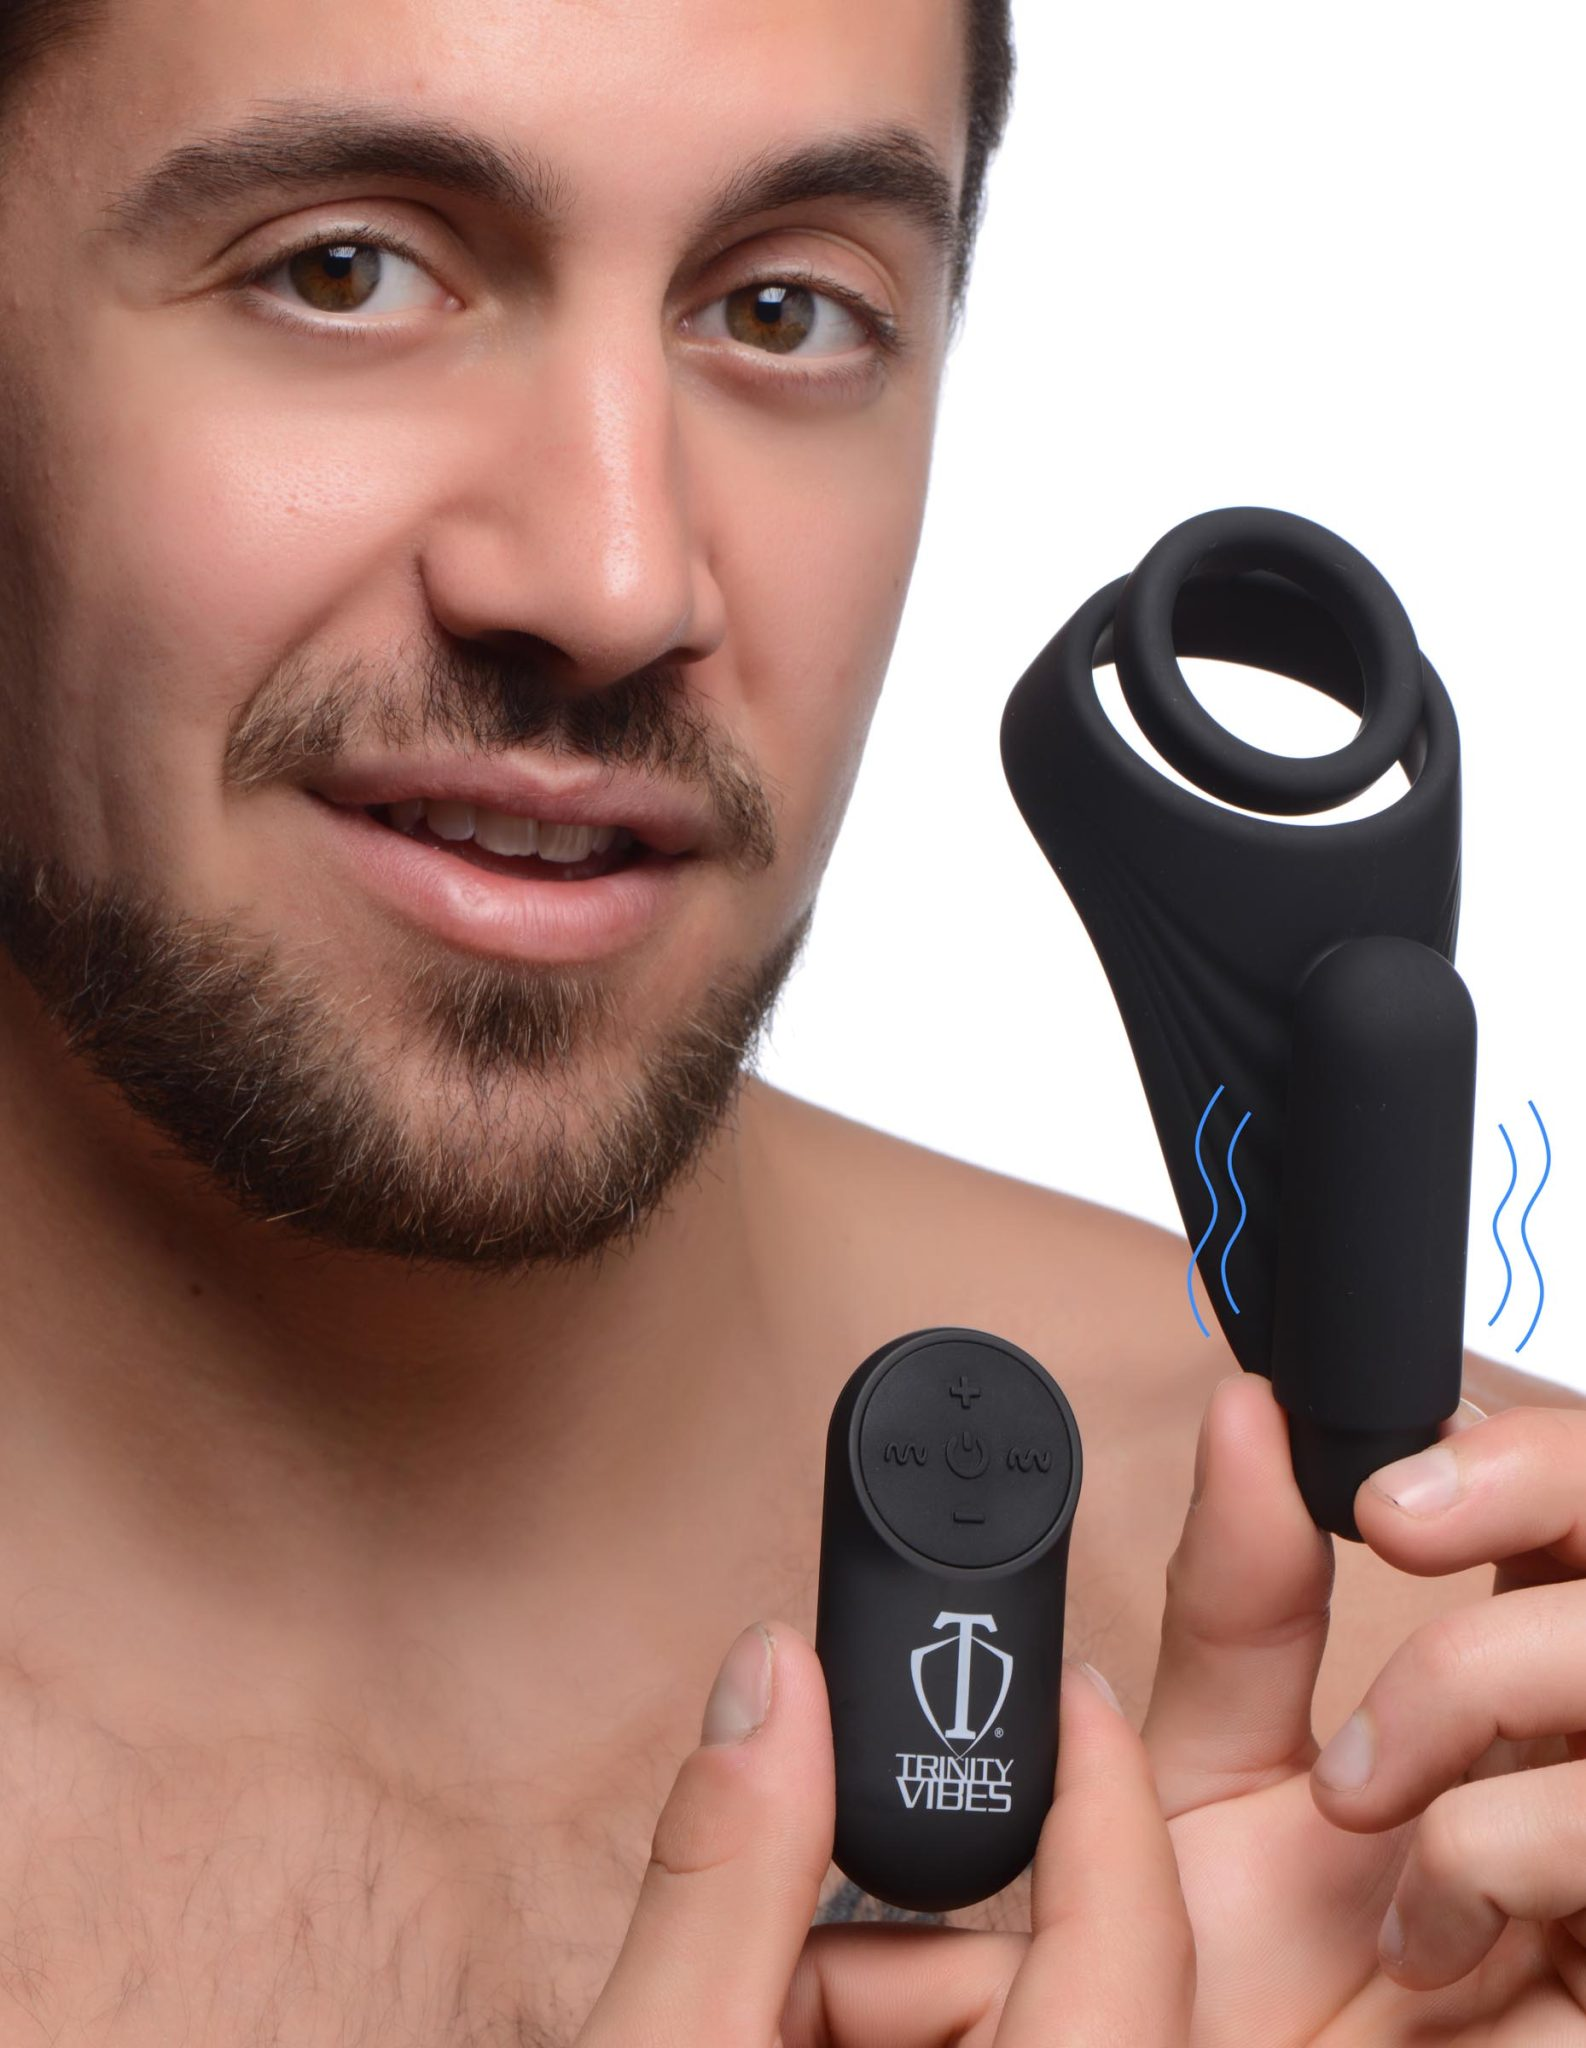 7X Silicone C-Ring with Vibrating Taint Stimulator